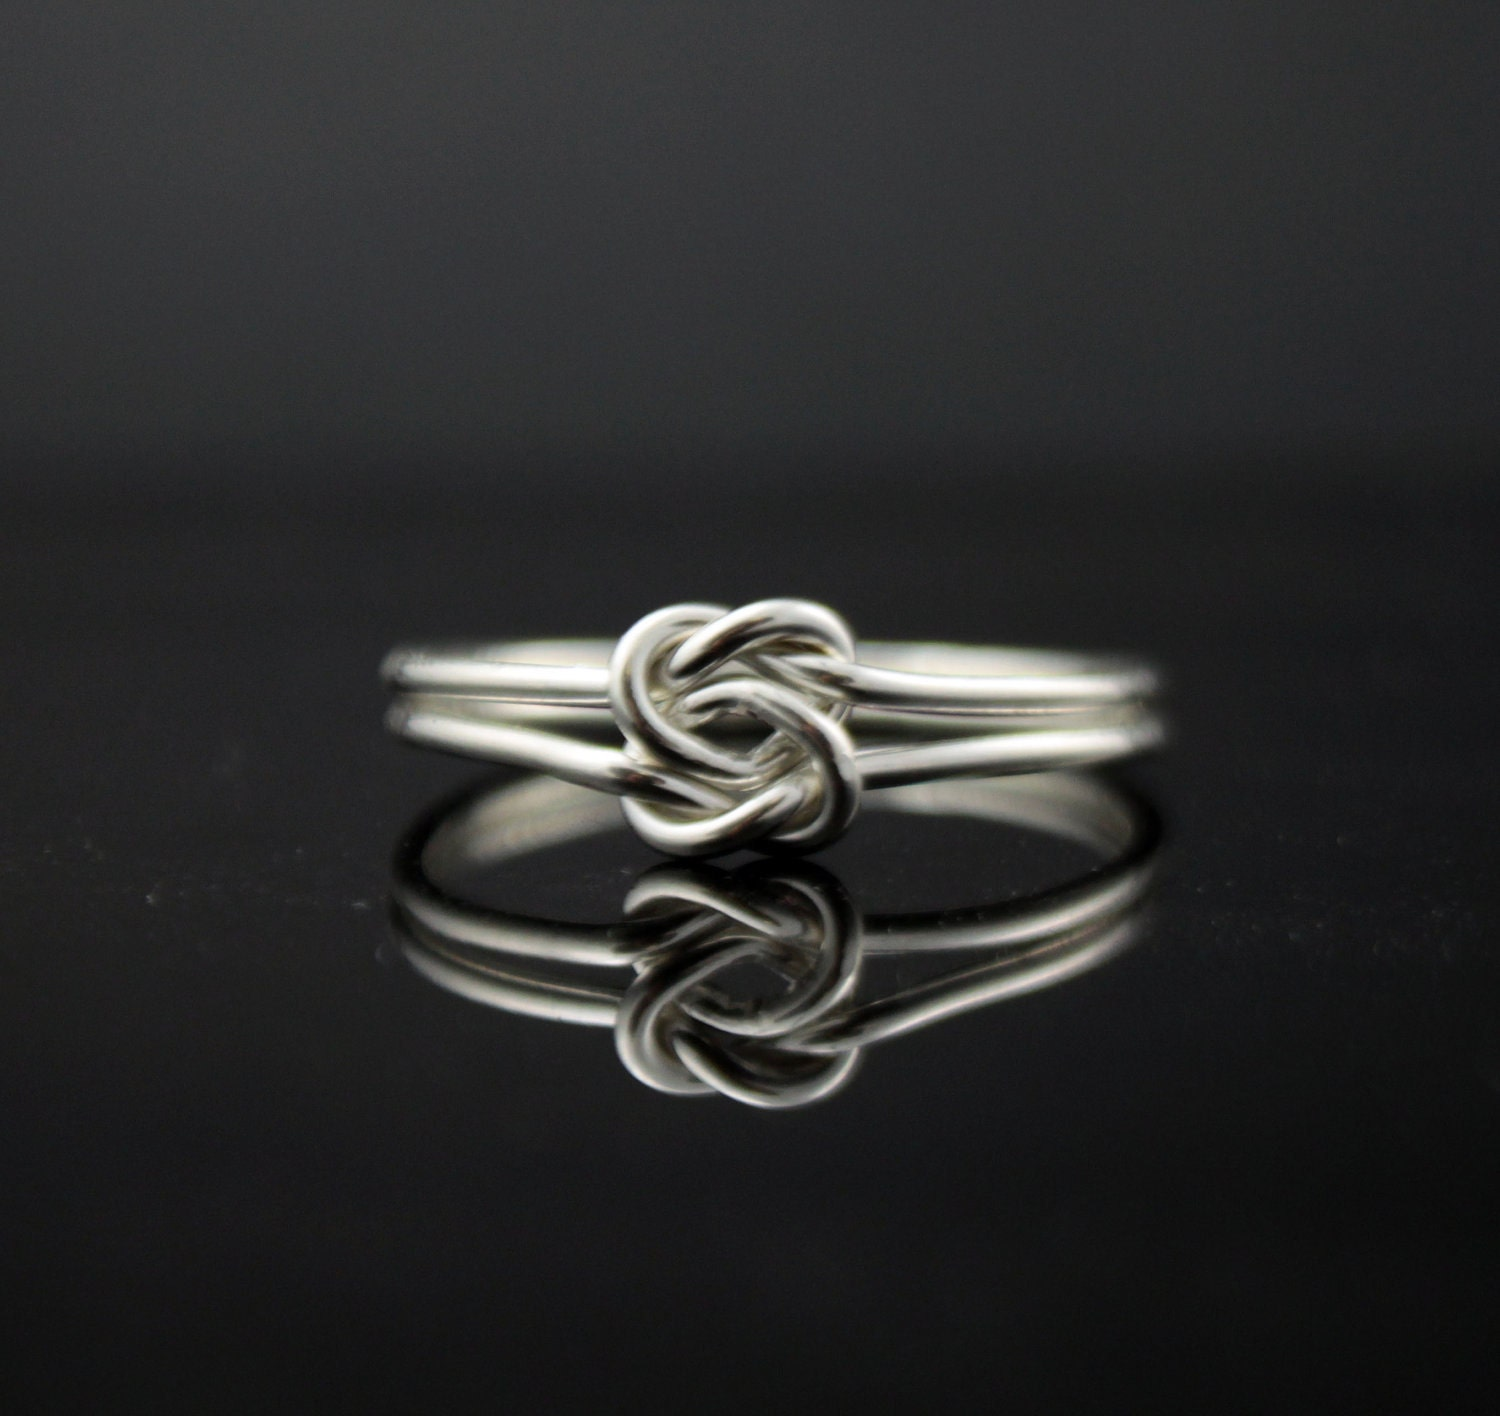 Celtic Love Knot Ring Tattoos - Viewing Gallery